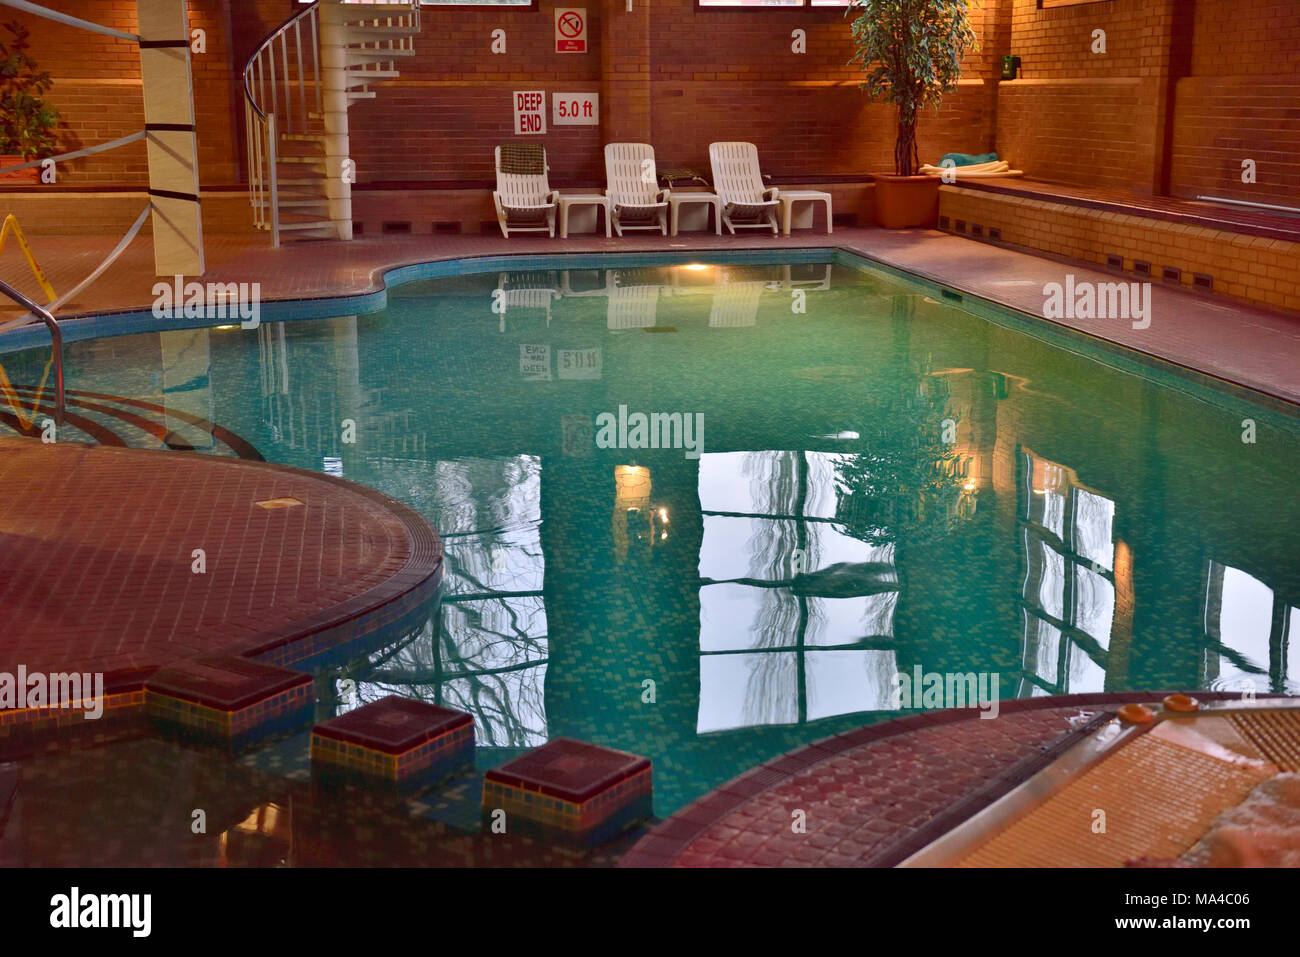 Hotel Ling Bao Zwembad Hotel Pool Indoor Stock Photos And Hotel Pool Indoor Stock